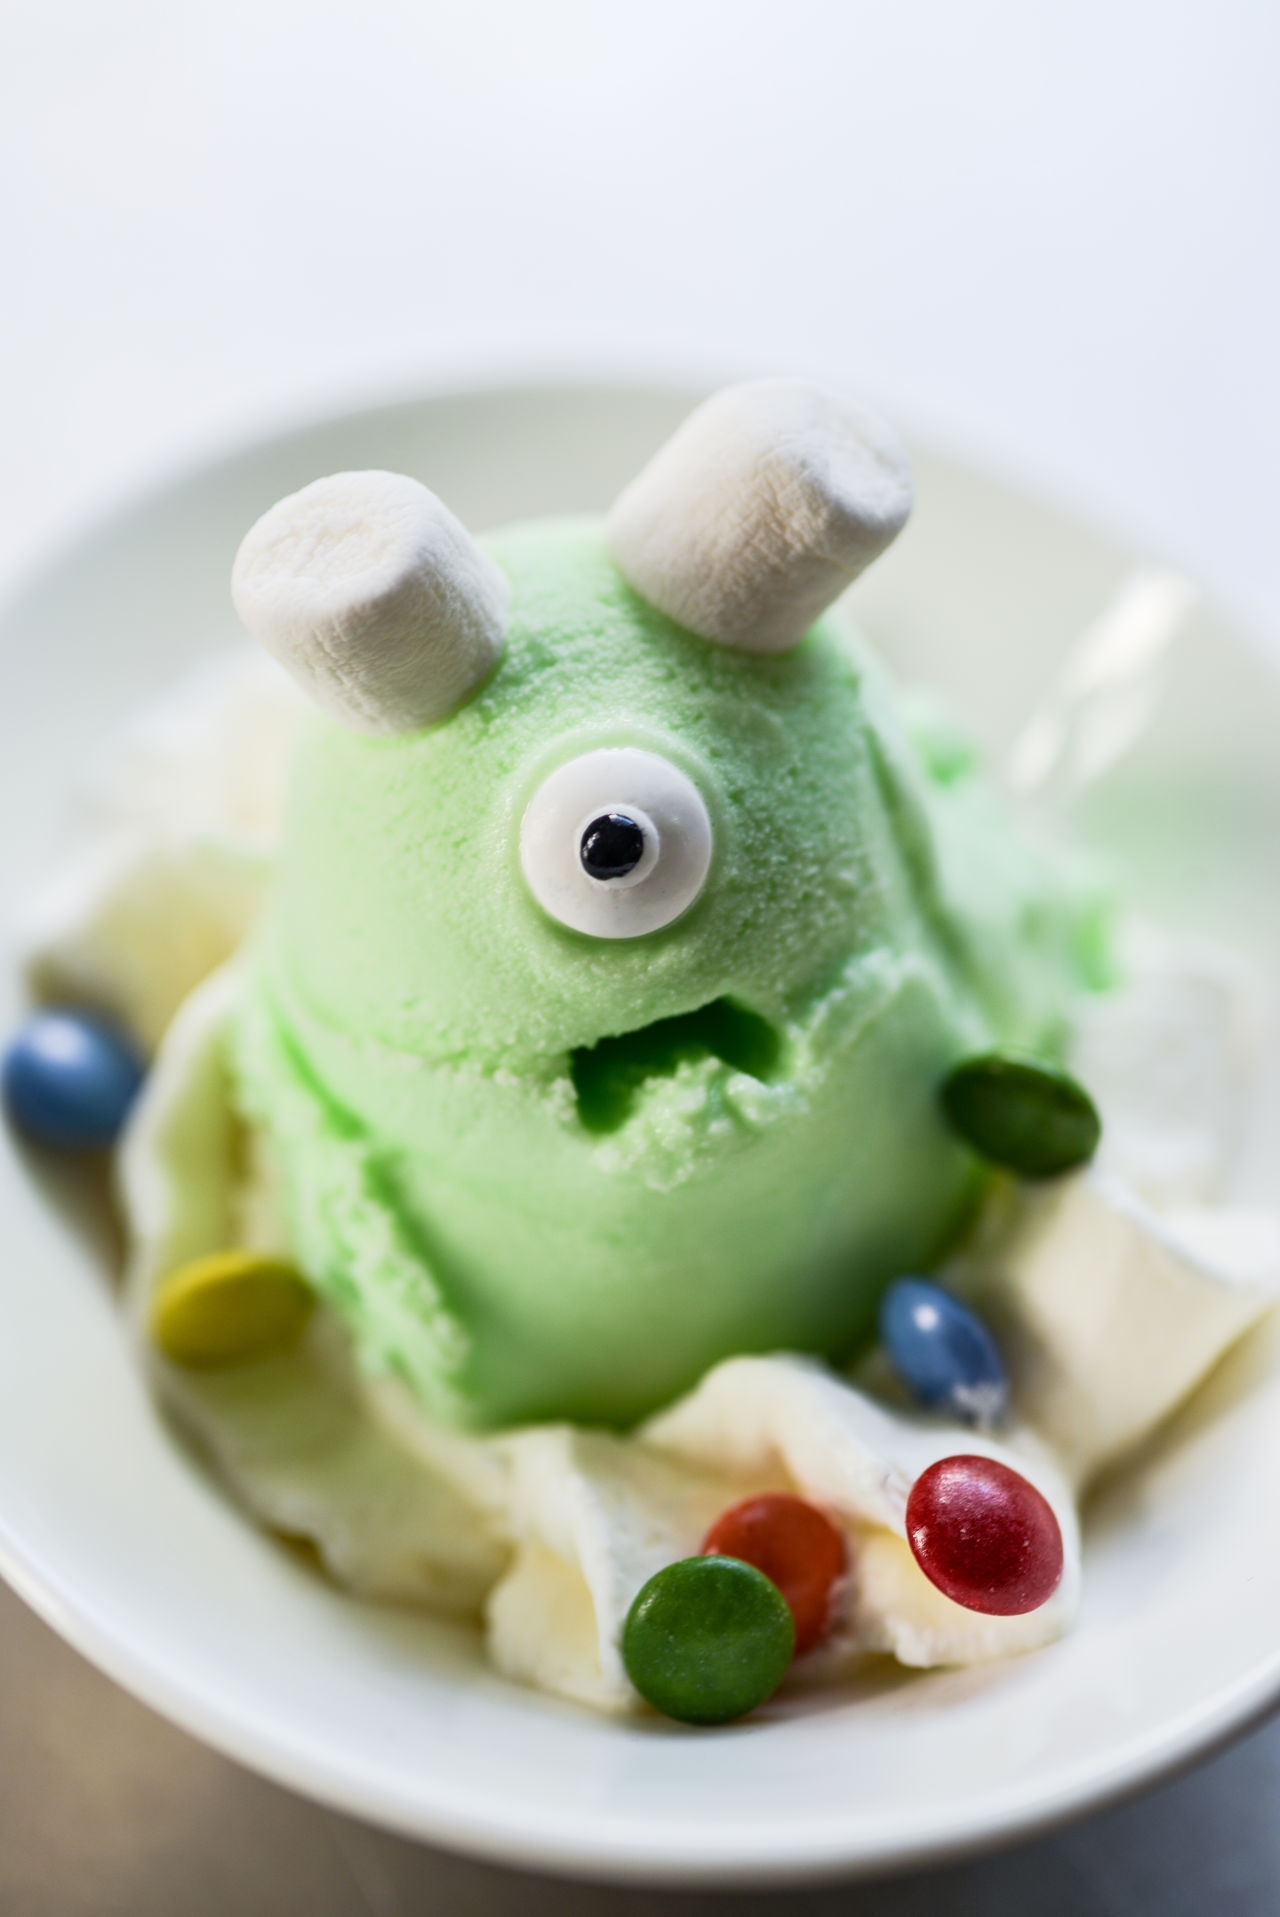 Close-up Day Dessert Eye Face Food Food And Drink Freshness Gelato Green Color Ice Cream Ice Monsters Indoors  Indulgence Mouth Open No People Plate Ready-to-eat Selective Focus Still Life Sweet Food Temptation Unhealthy Eating Visual Feast